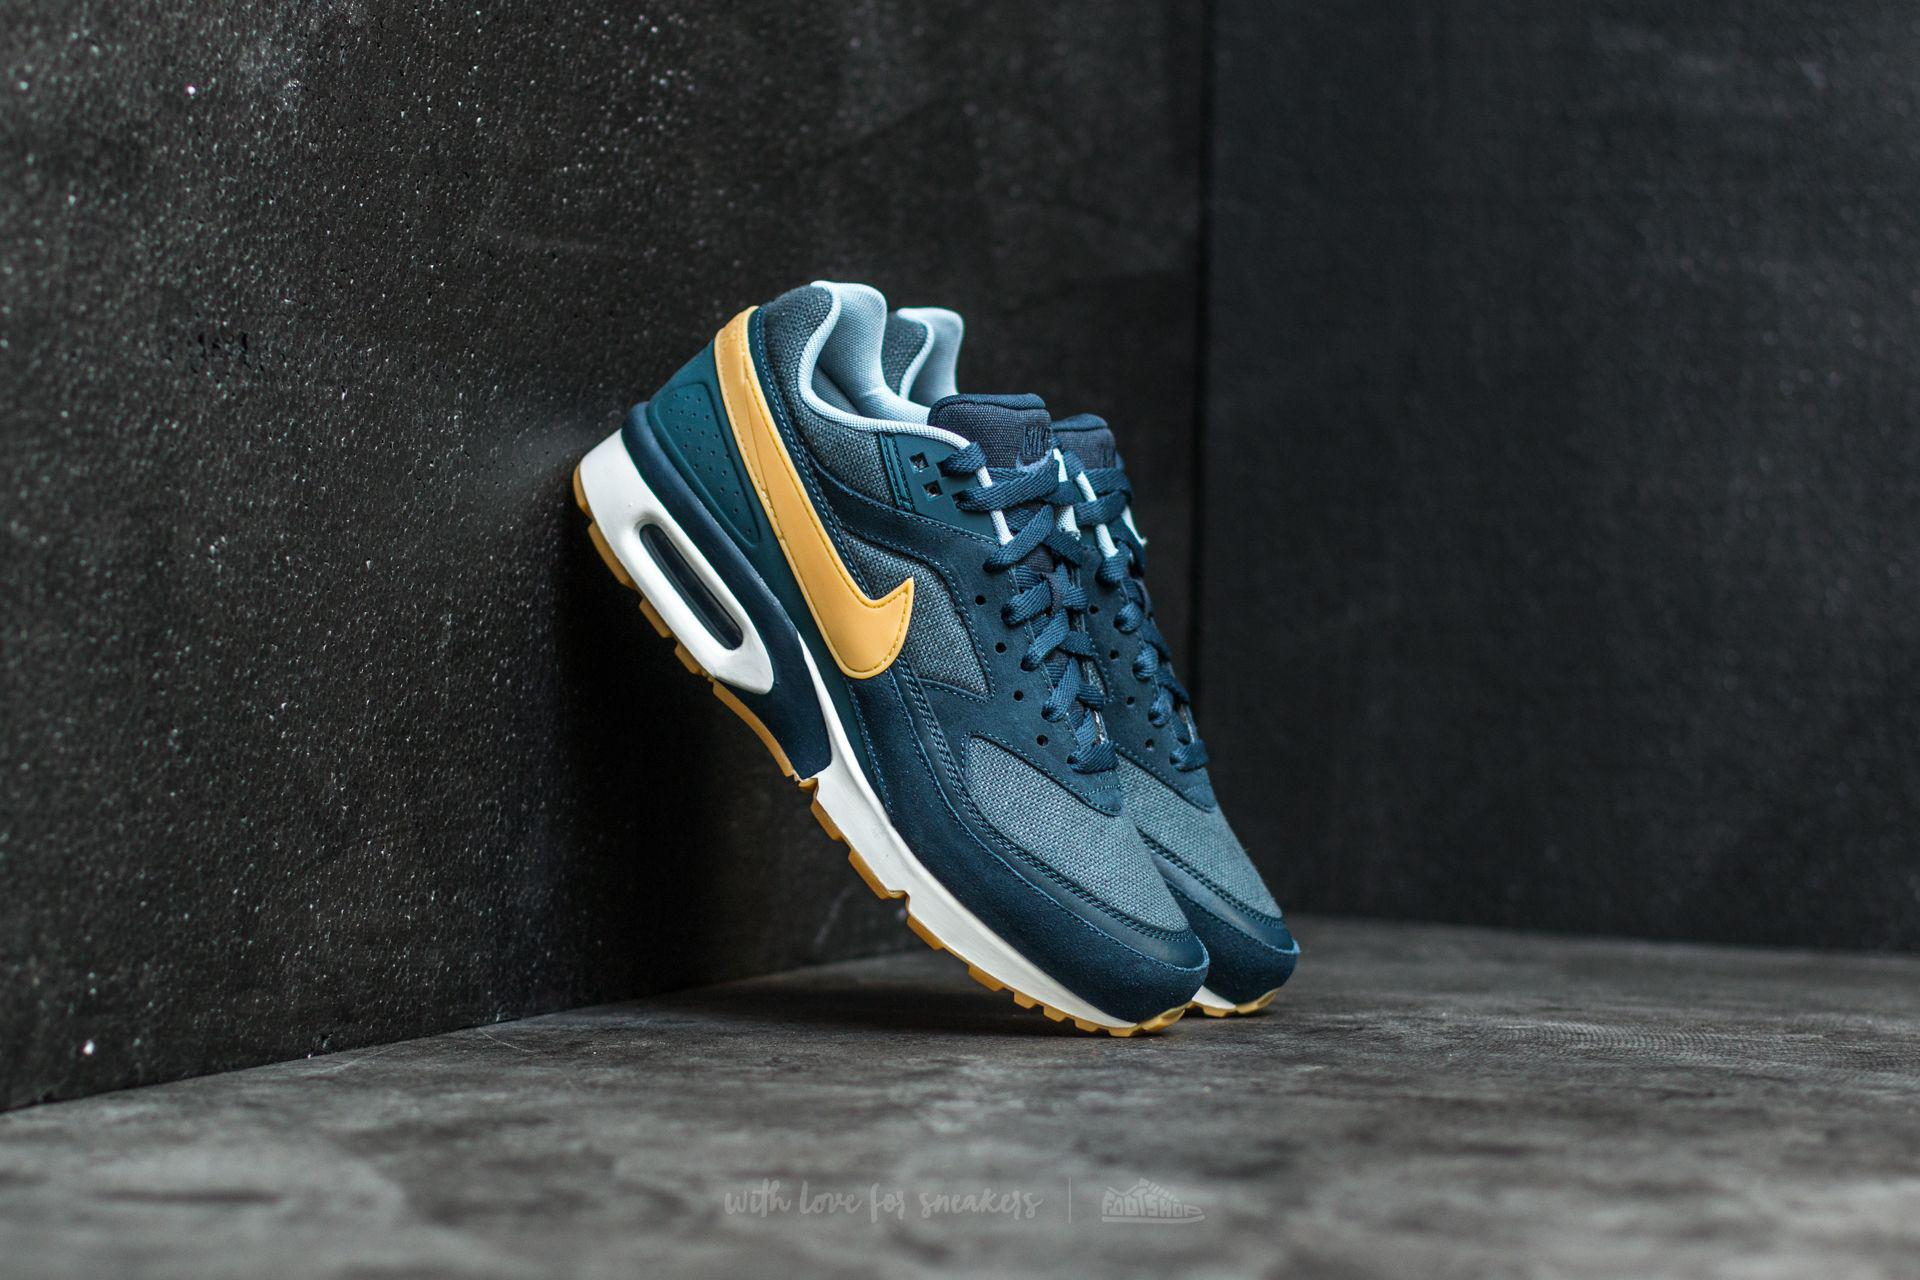 60710f4738 Nike Air Max Bw Premium Armory Navy/ Gum Yellow in Blue for Men - Lyst